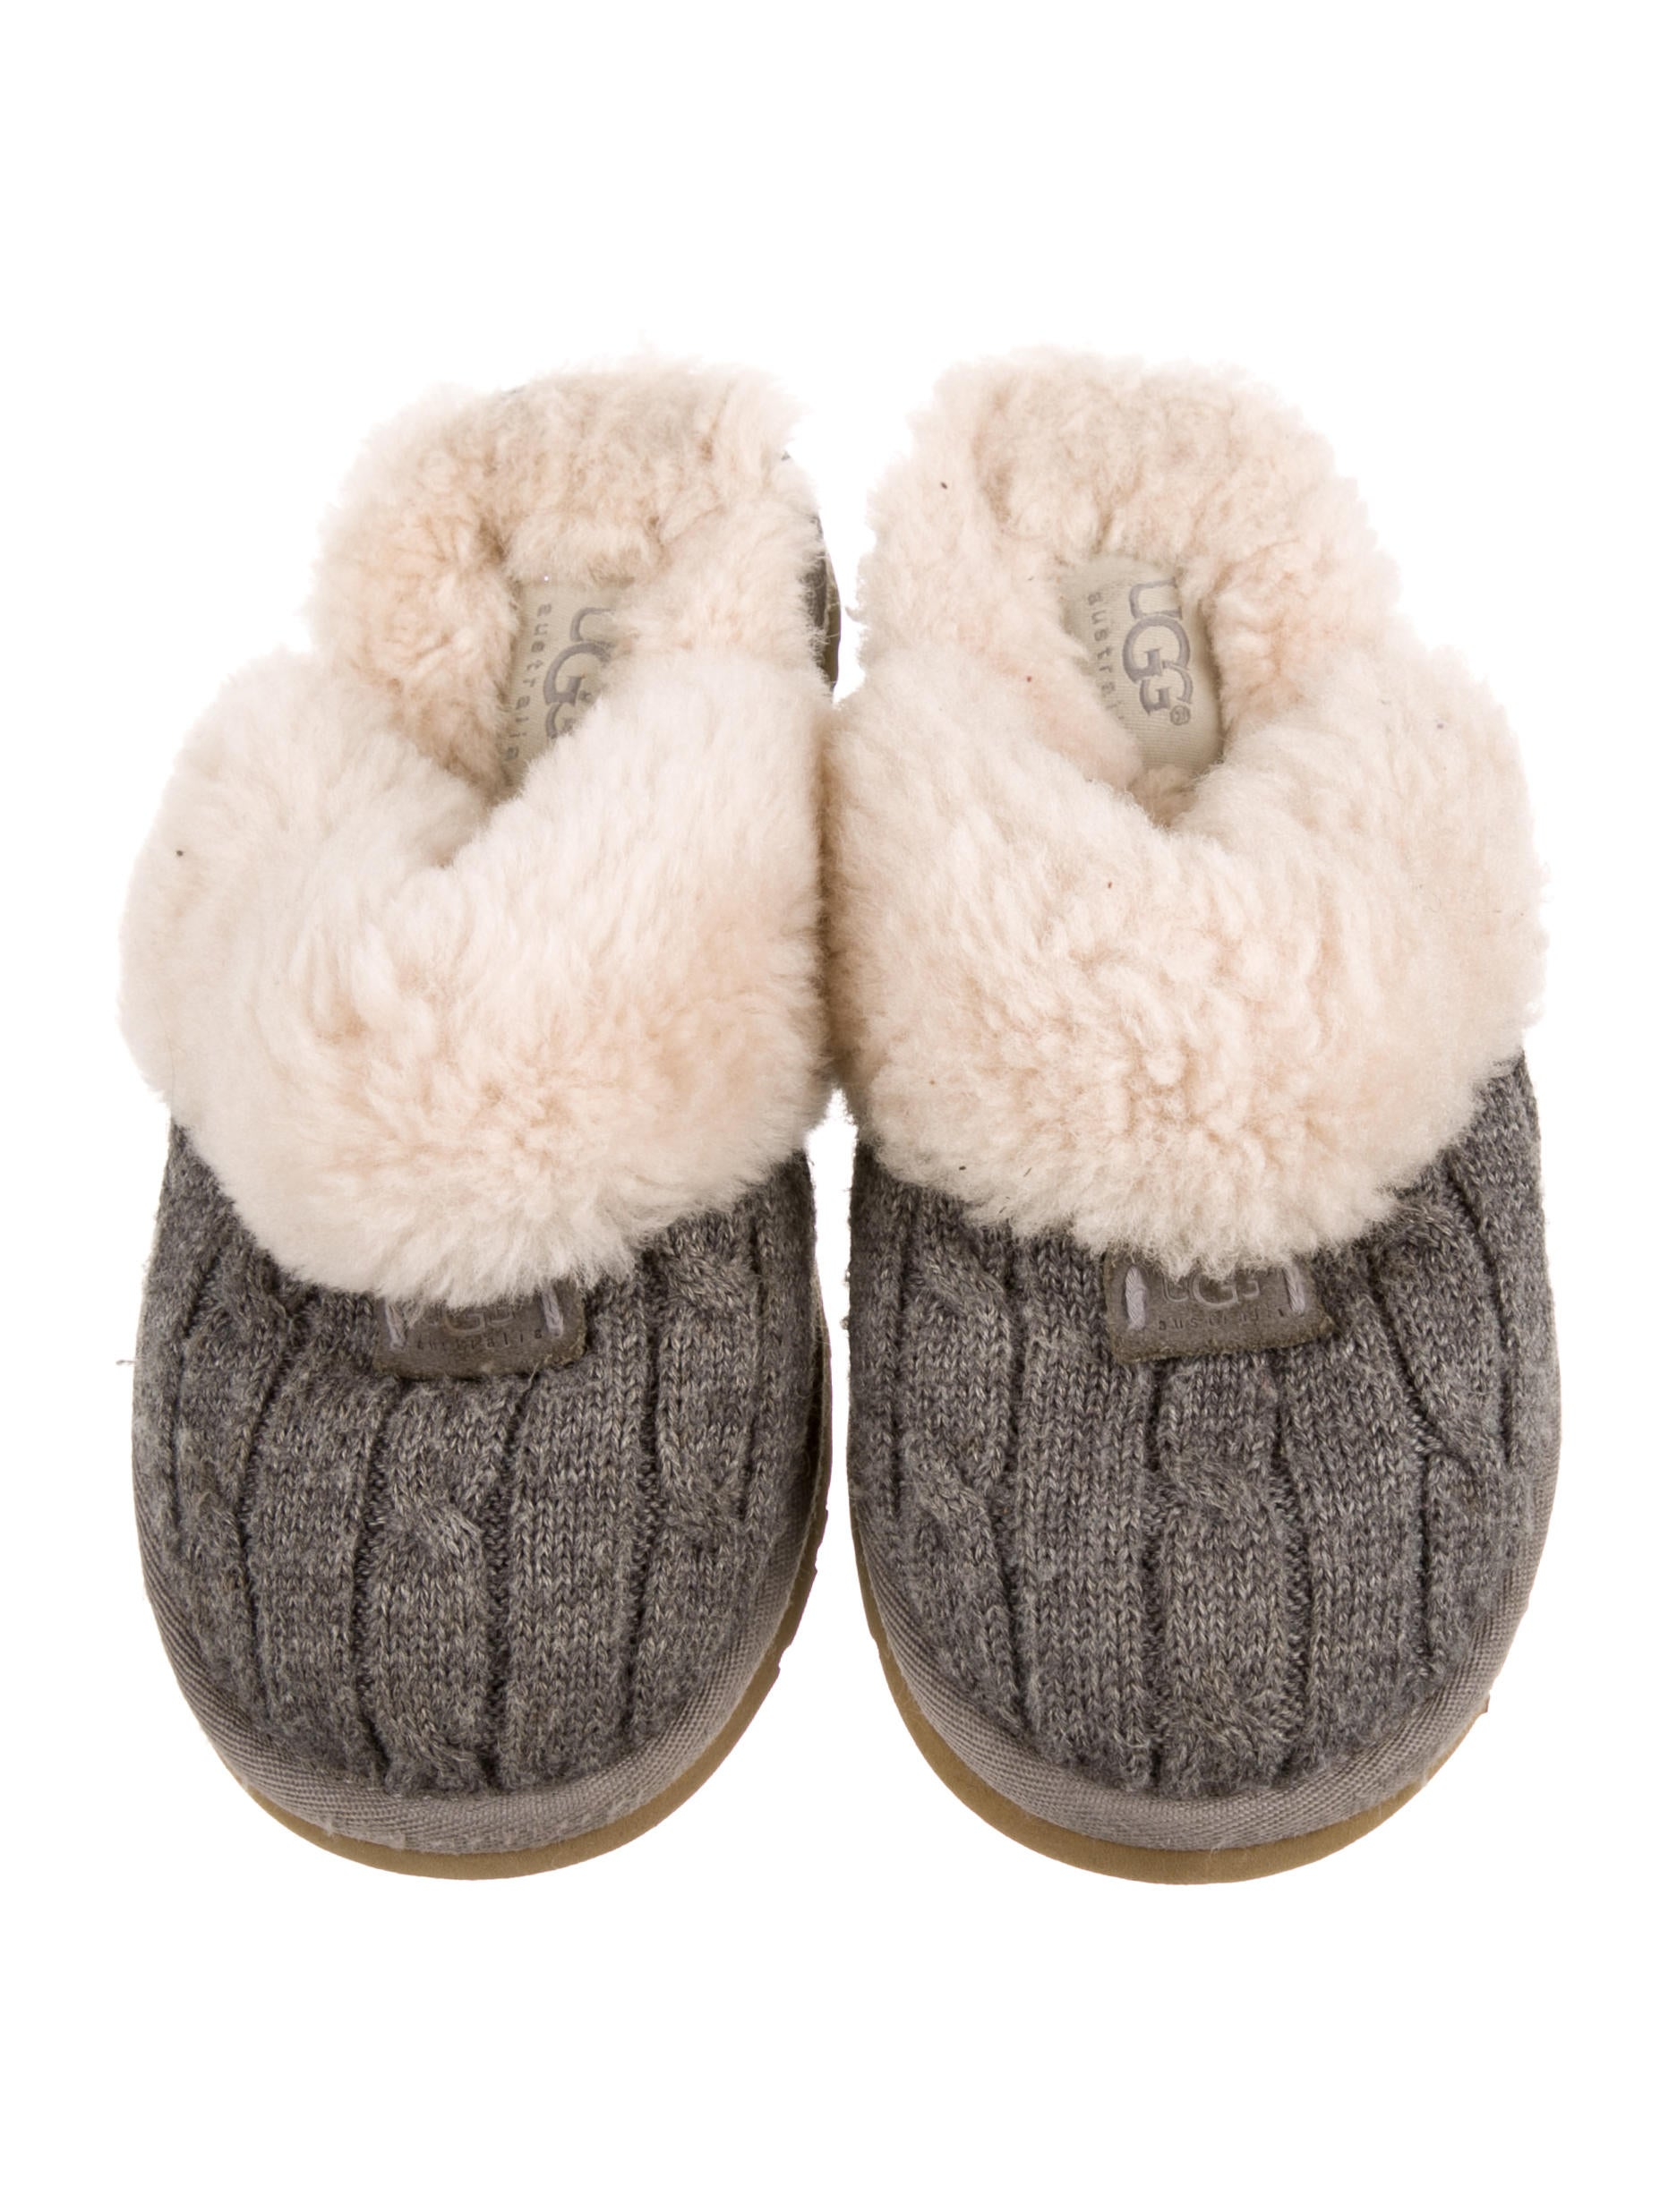 Ugg Australia Cozy Knit Slippers Girls Wuugg28102 The Realreal